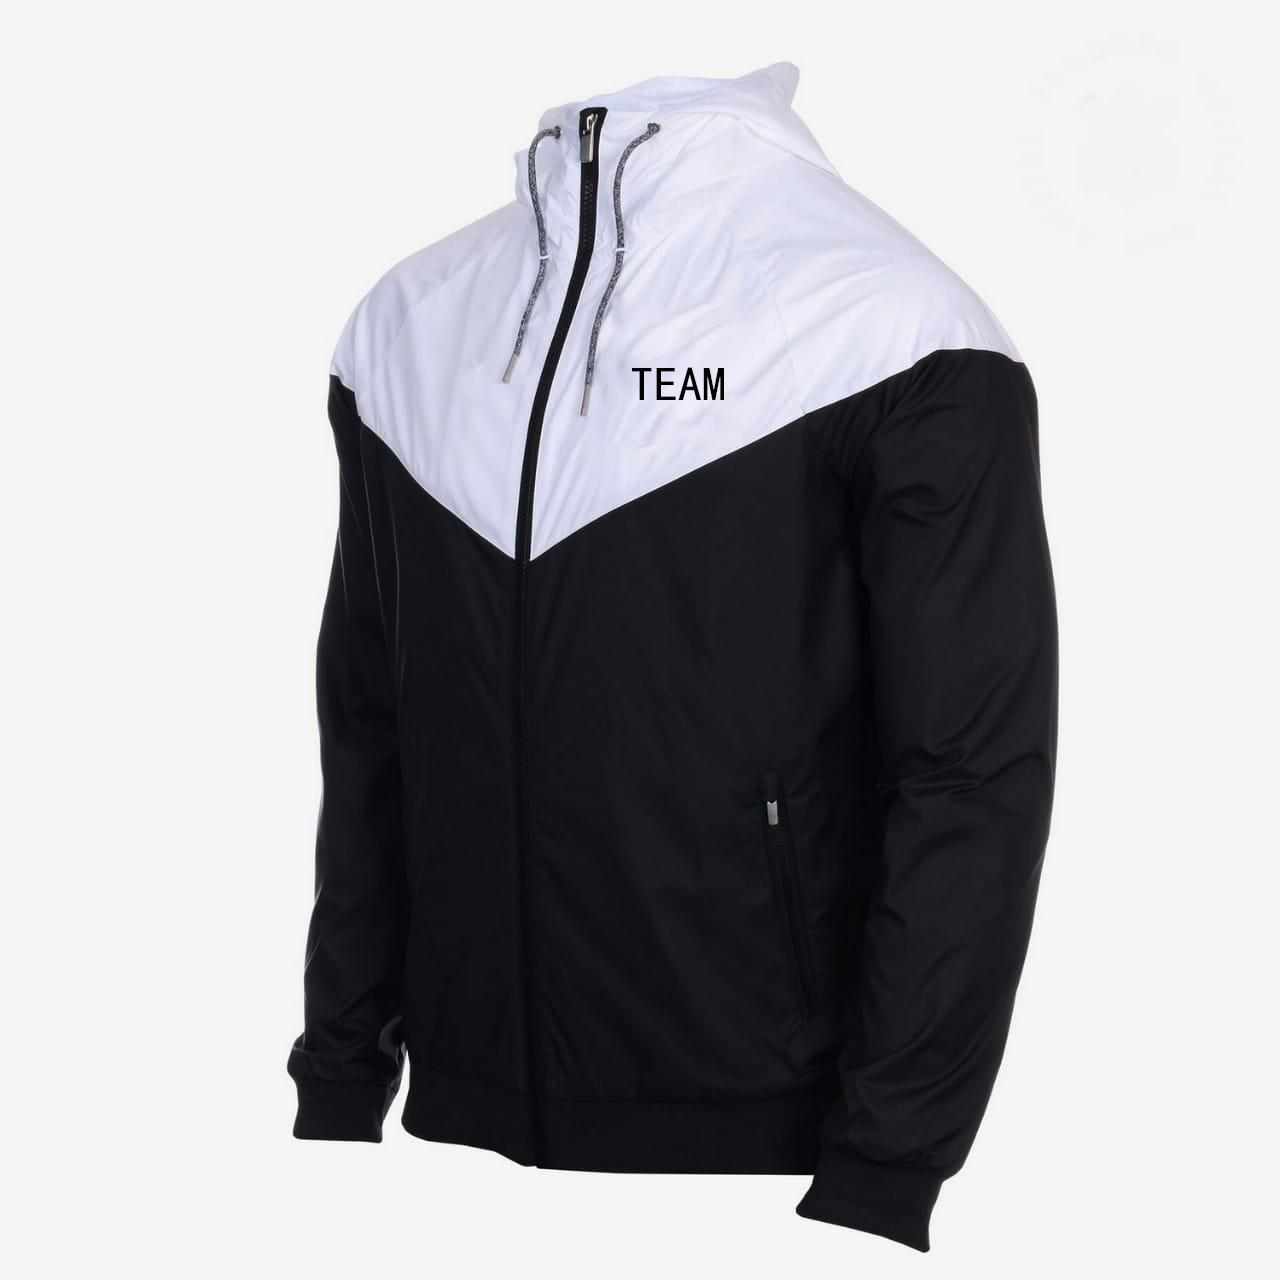 Designer Mens Sports Brand Team Jackets Club Windbreaker Coats Print Zipper Hoodies Running Outwear Top Quality